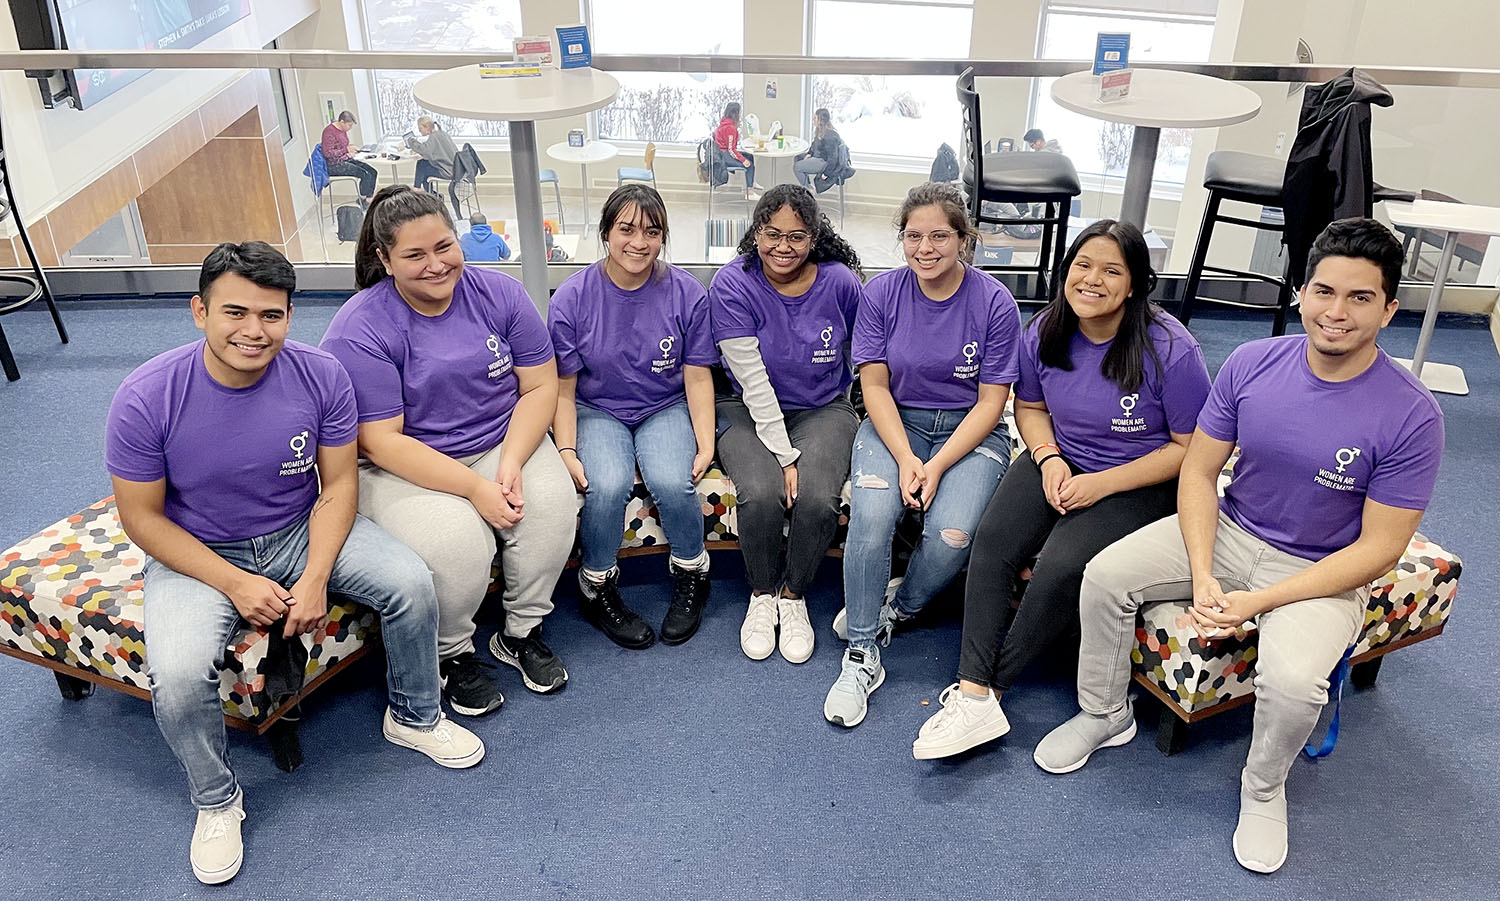 Women Are Problematic executive members are, from left, Gio Gonzalez, Molly Con, Earlen Gutierrez, Claudia Taylor, Lucia Castro Jacobo, Jackie Mendez and Javi Corpus Ochoa. Taylor is president of the UNK student organization, which focuses on women's rights and female empowerment.